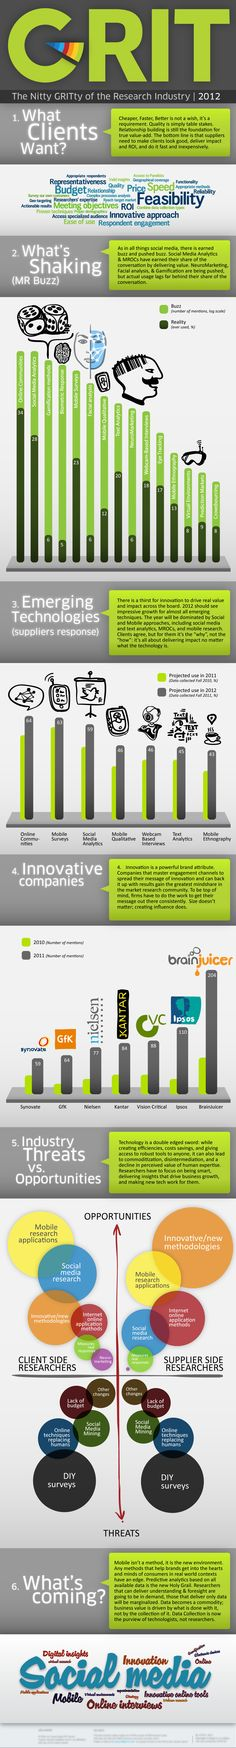 The Nitty GRITty of Research Industry 2012 [infographic]